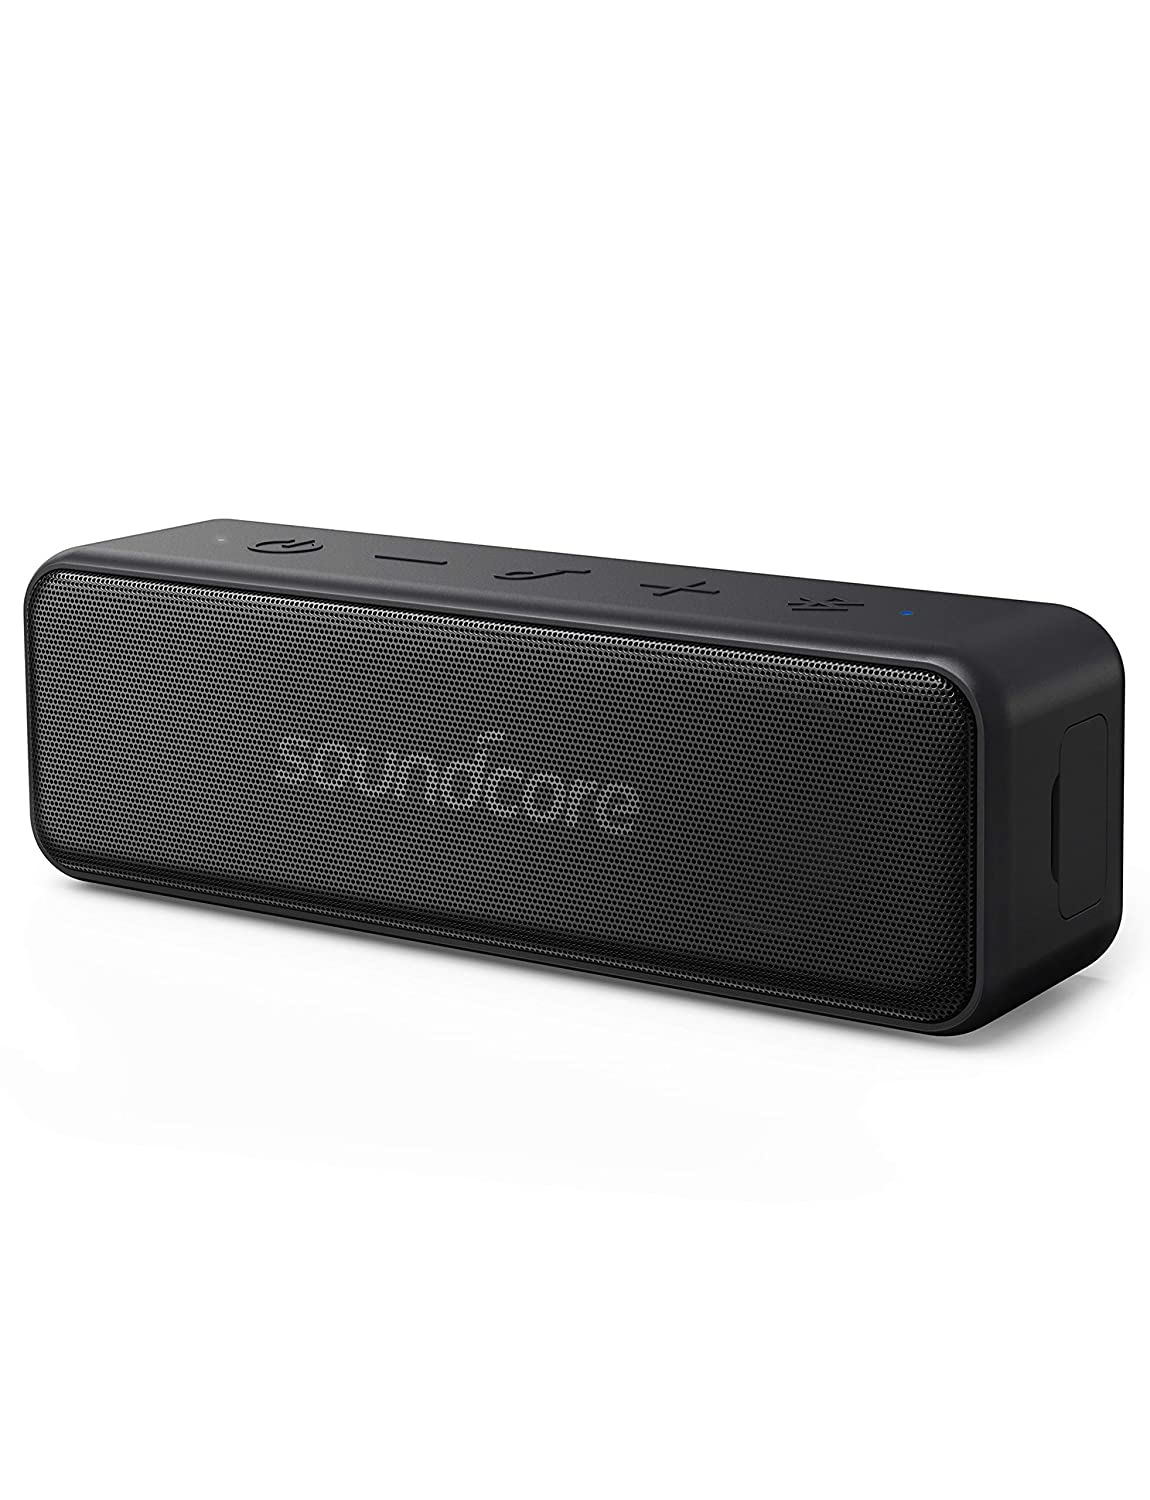 6914311eefaa6 Anker Soundcore Motion B, Portable Bluetooth Speaker, with 12W Louder  Stereo Sound, IPX7 Waterproof, and 12+ Hr Longer-Lasting Playtime,  Soundcore ...